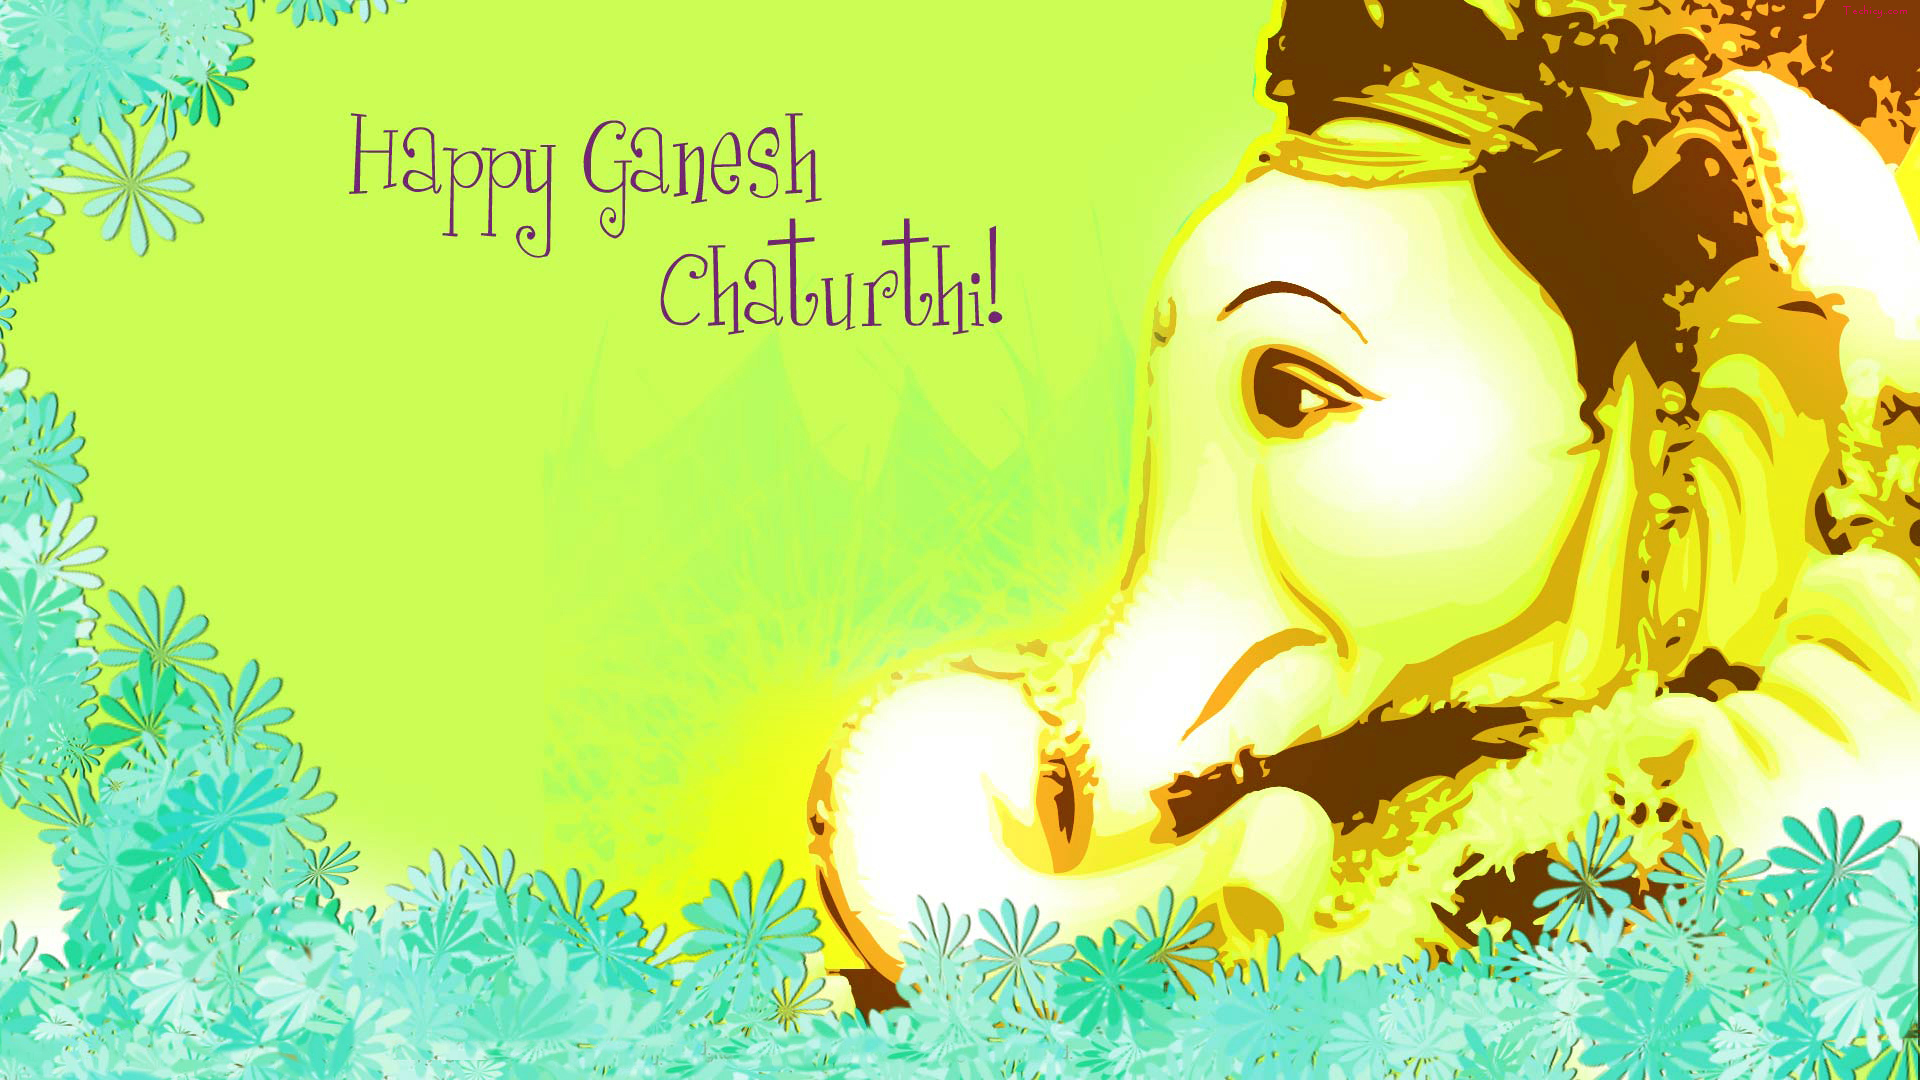 ganesh chaturthi wishes quotes messages sms 2016 ganesh ganesh chaturthi for mobile pc